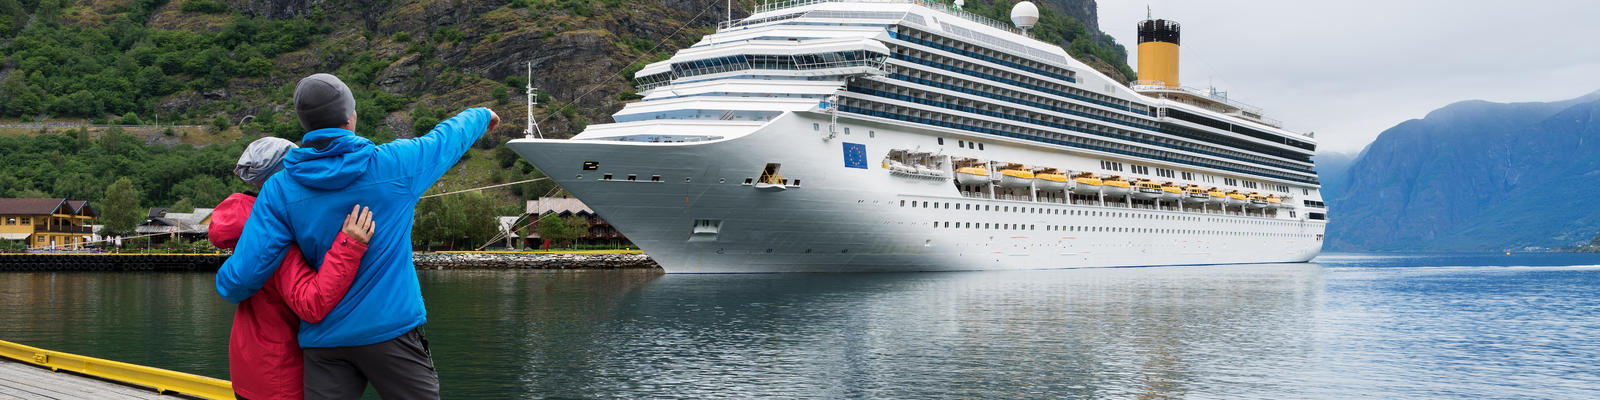 12 Bad Decisions That Could Ruin Your Cruise (Photo: Kotenko Oleksandr/Shutterstock)